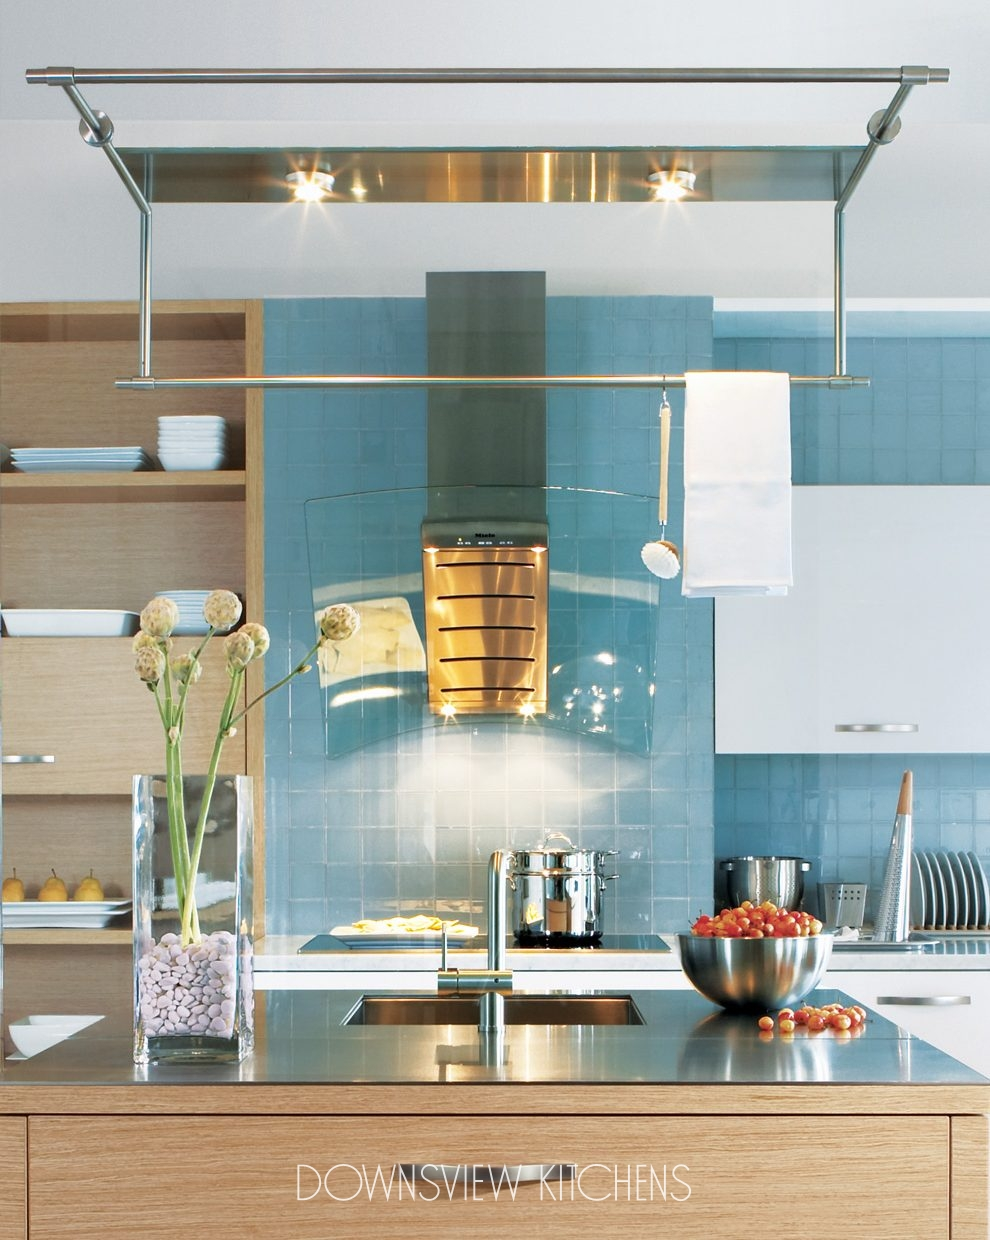 MIRROR IMAGE - Downsview Kitchens and Fine Custom Cabinetry ...